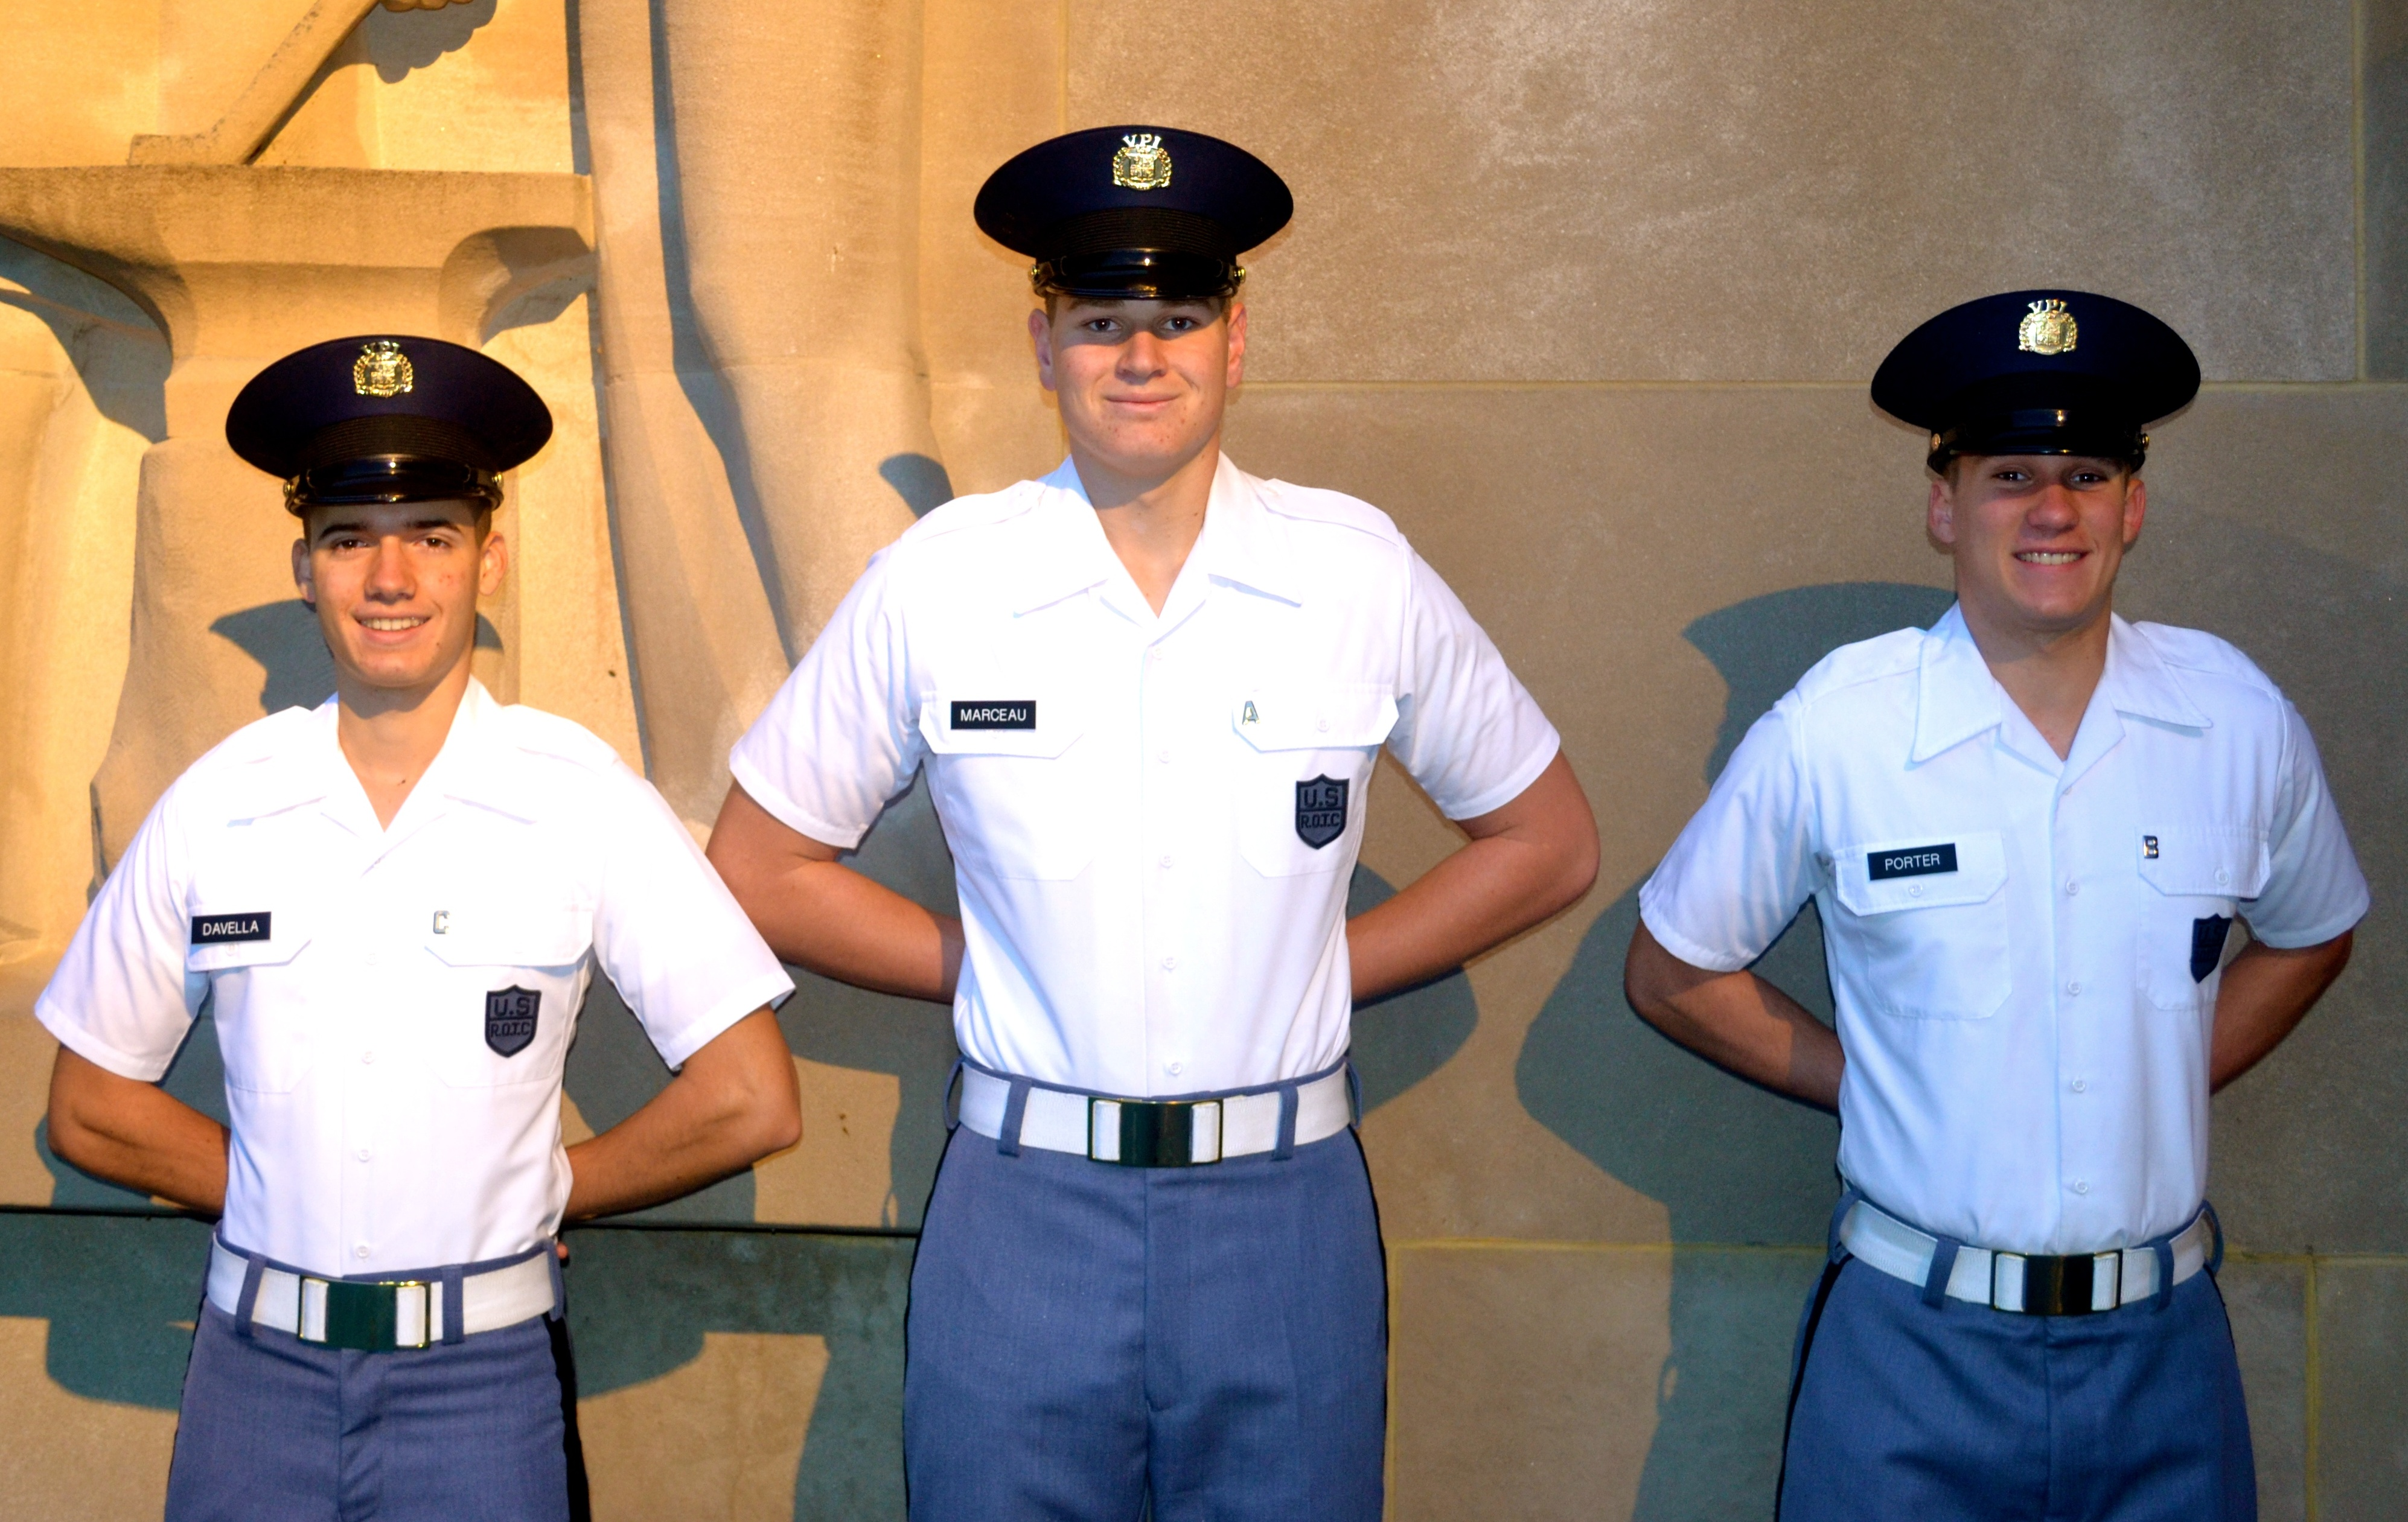 From left to right are Cadets Michael Davella, Bryan Marceau, and Joshua Porter standing in front of the Pylons.